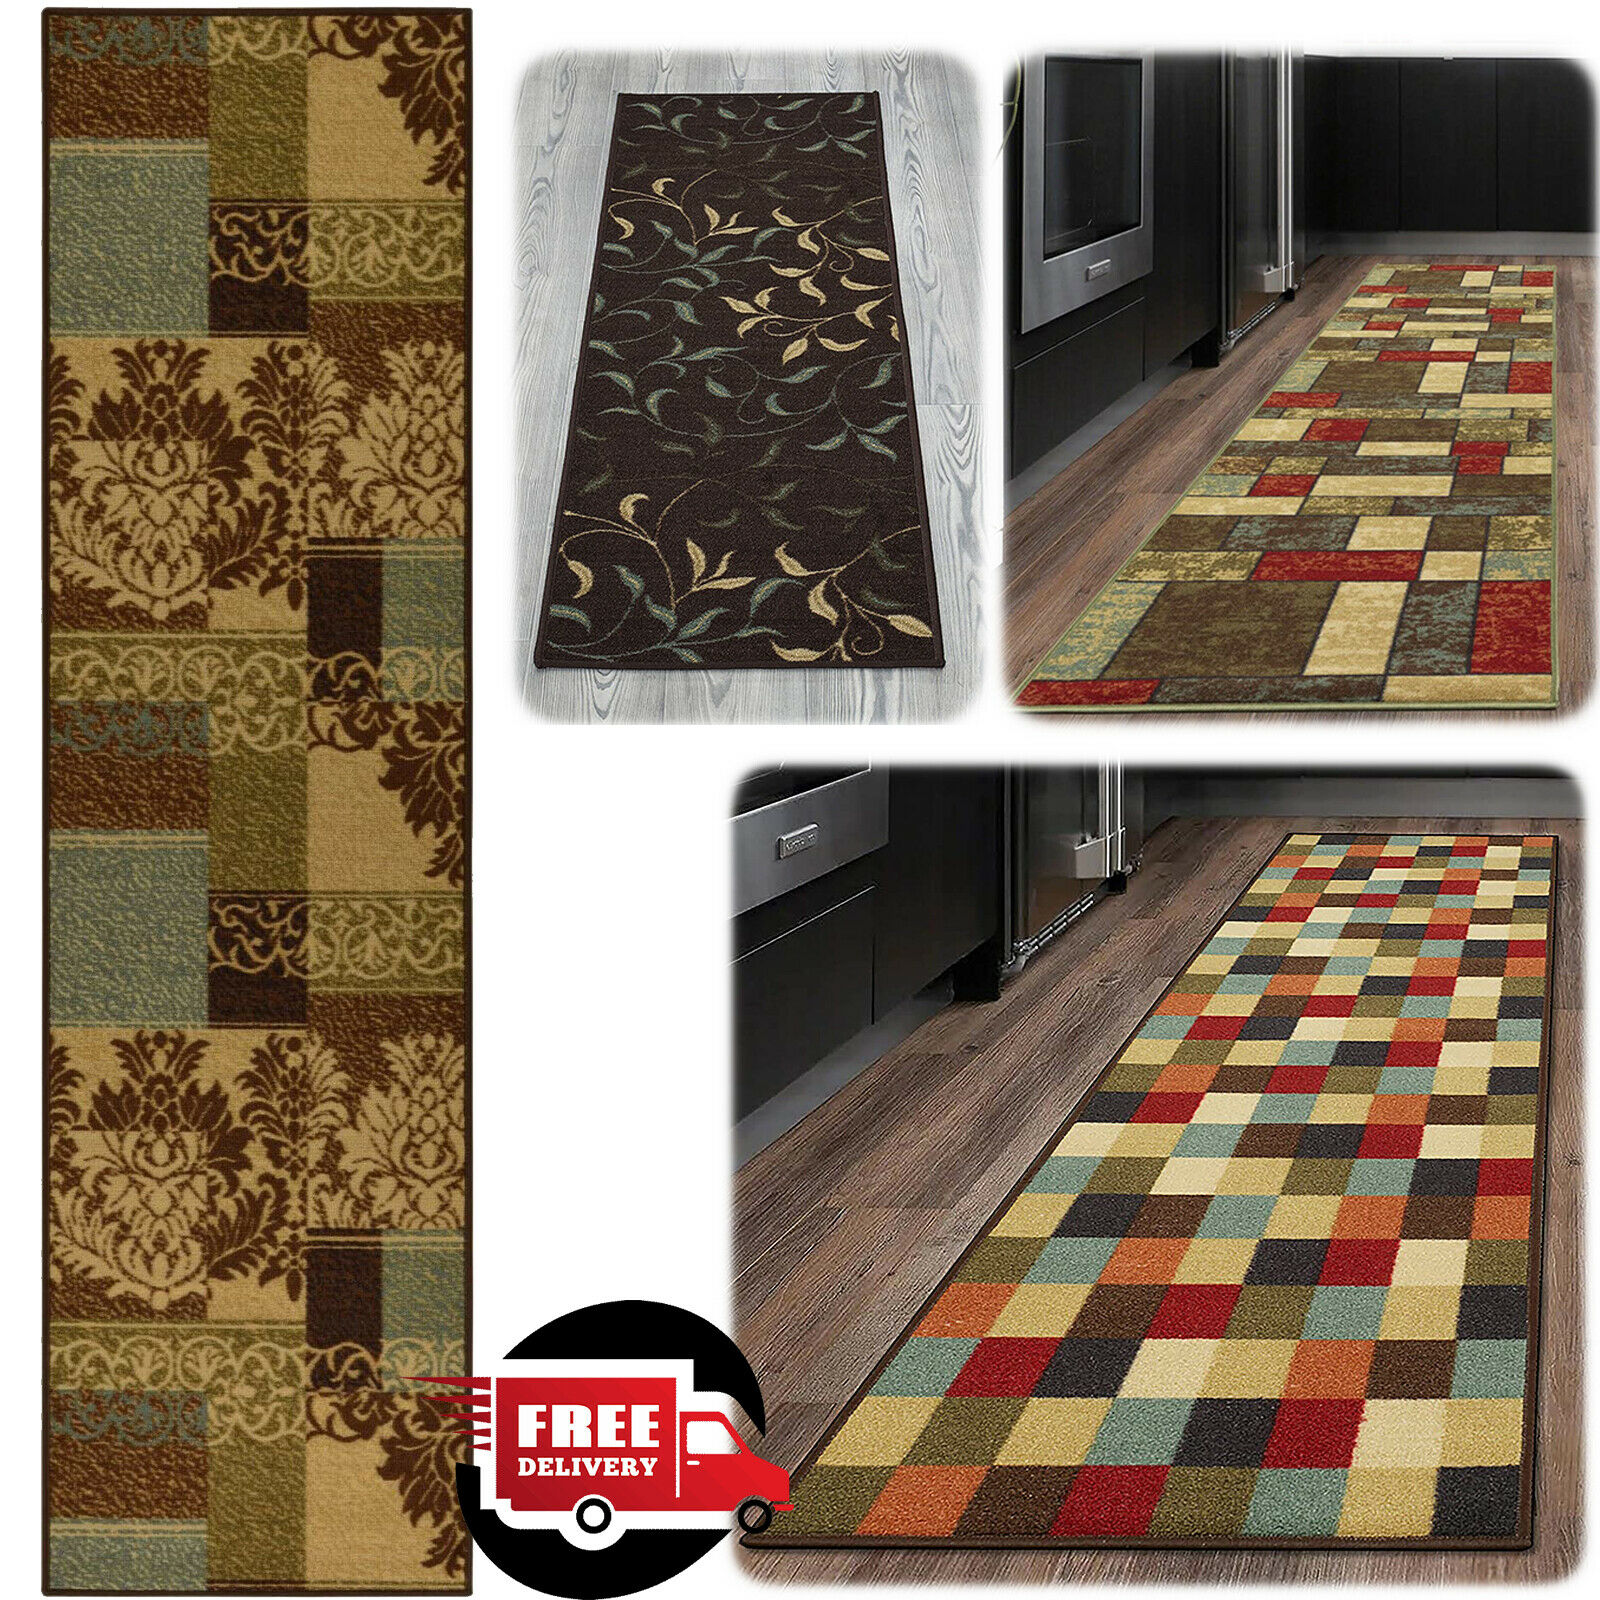 Hallway Rug Runners 20x59 Kitchen Area Carpet Non Slip Rubber Long Floor Mat 1 Of 11free Shipping See More